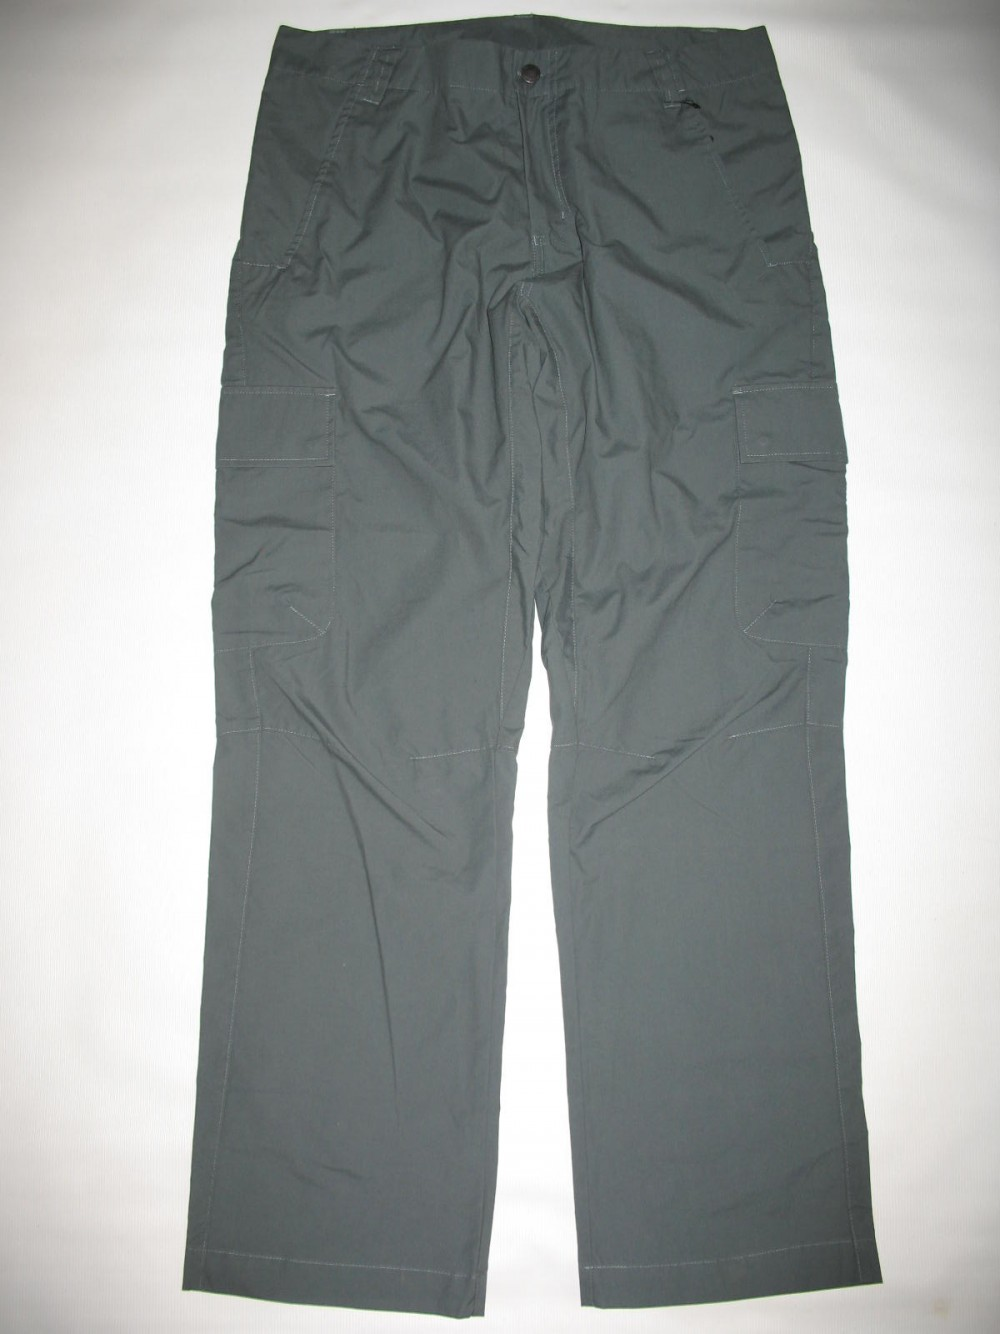 Штаны JACK WOLFSKIN North evo pants (размер 50/L) - 3